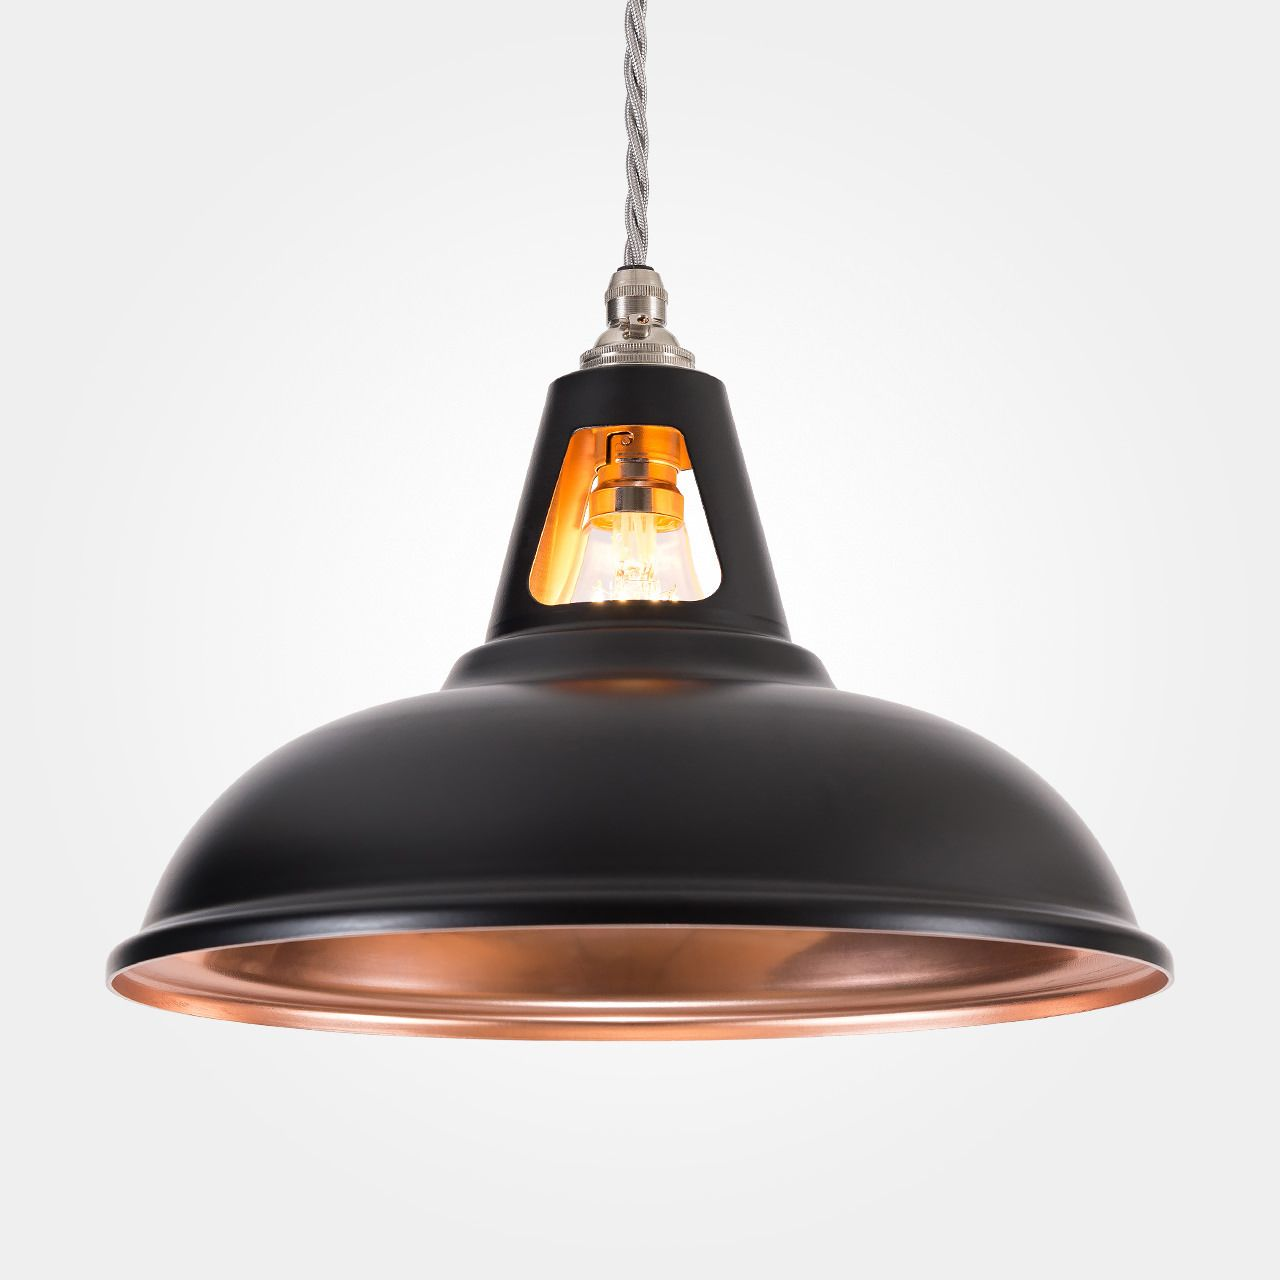 Independent Uk Lighting Company Stocking The Best In